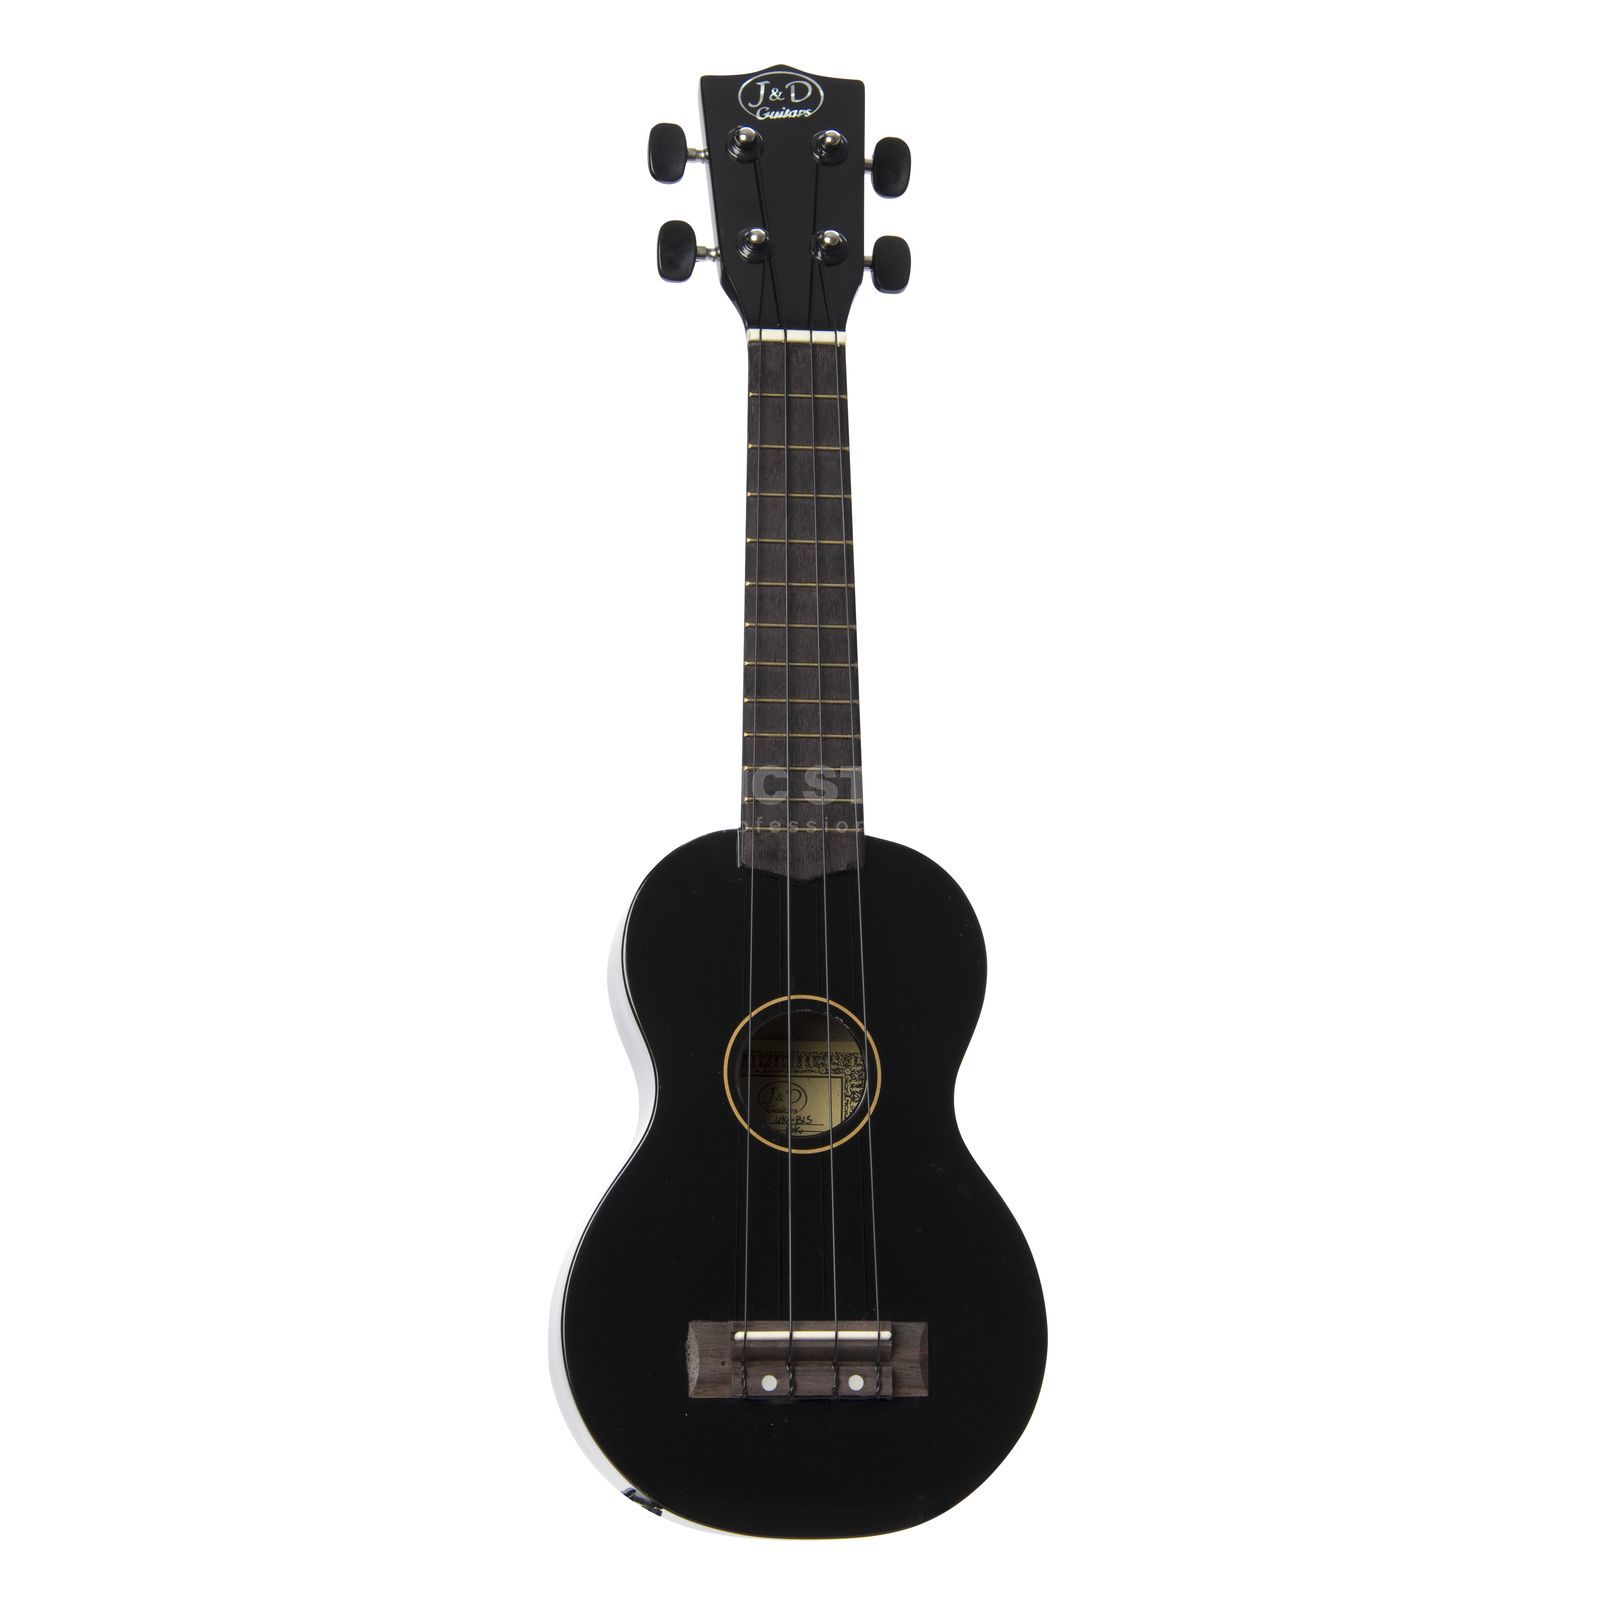 Jack & Danny UK-B1S BK Ukulele, Black, incl. Bag Product Image